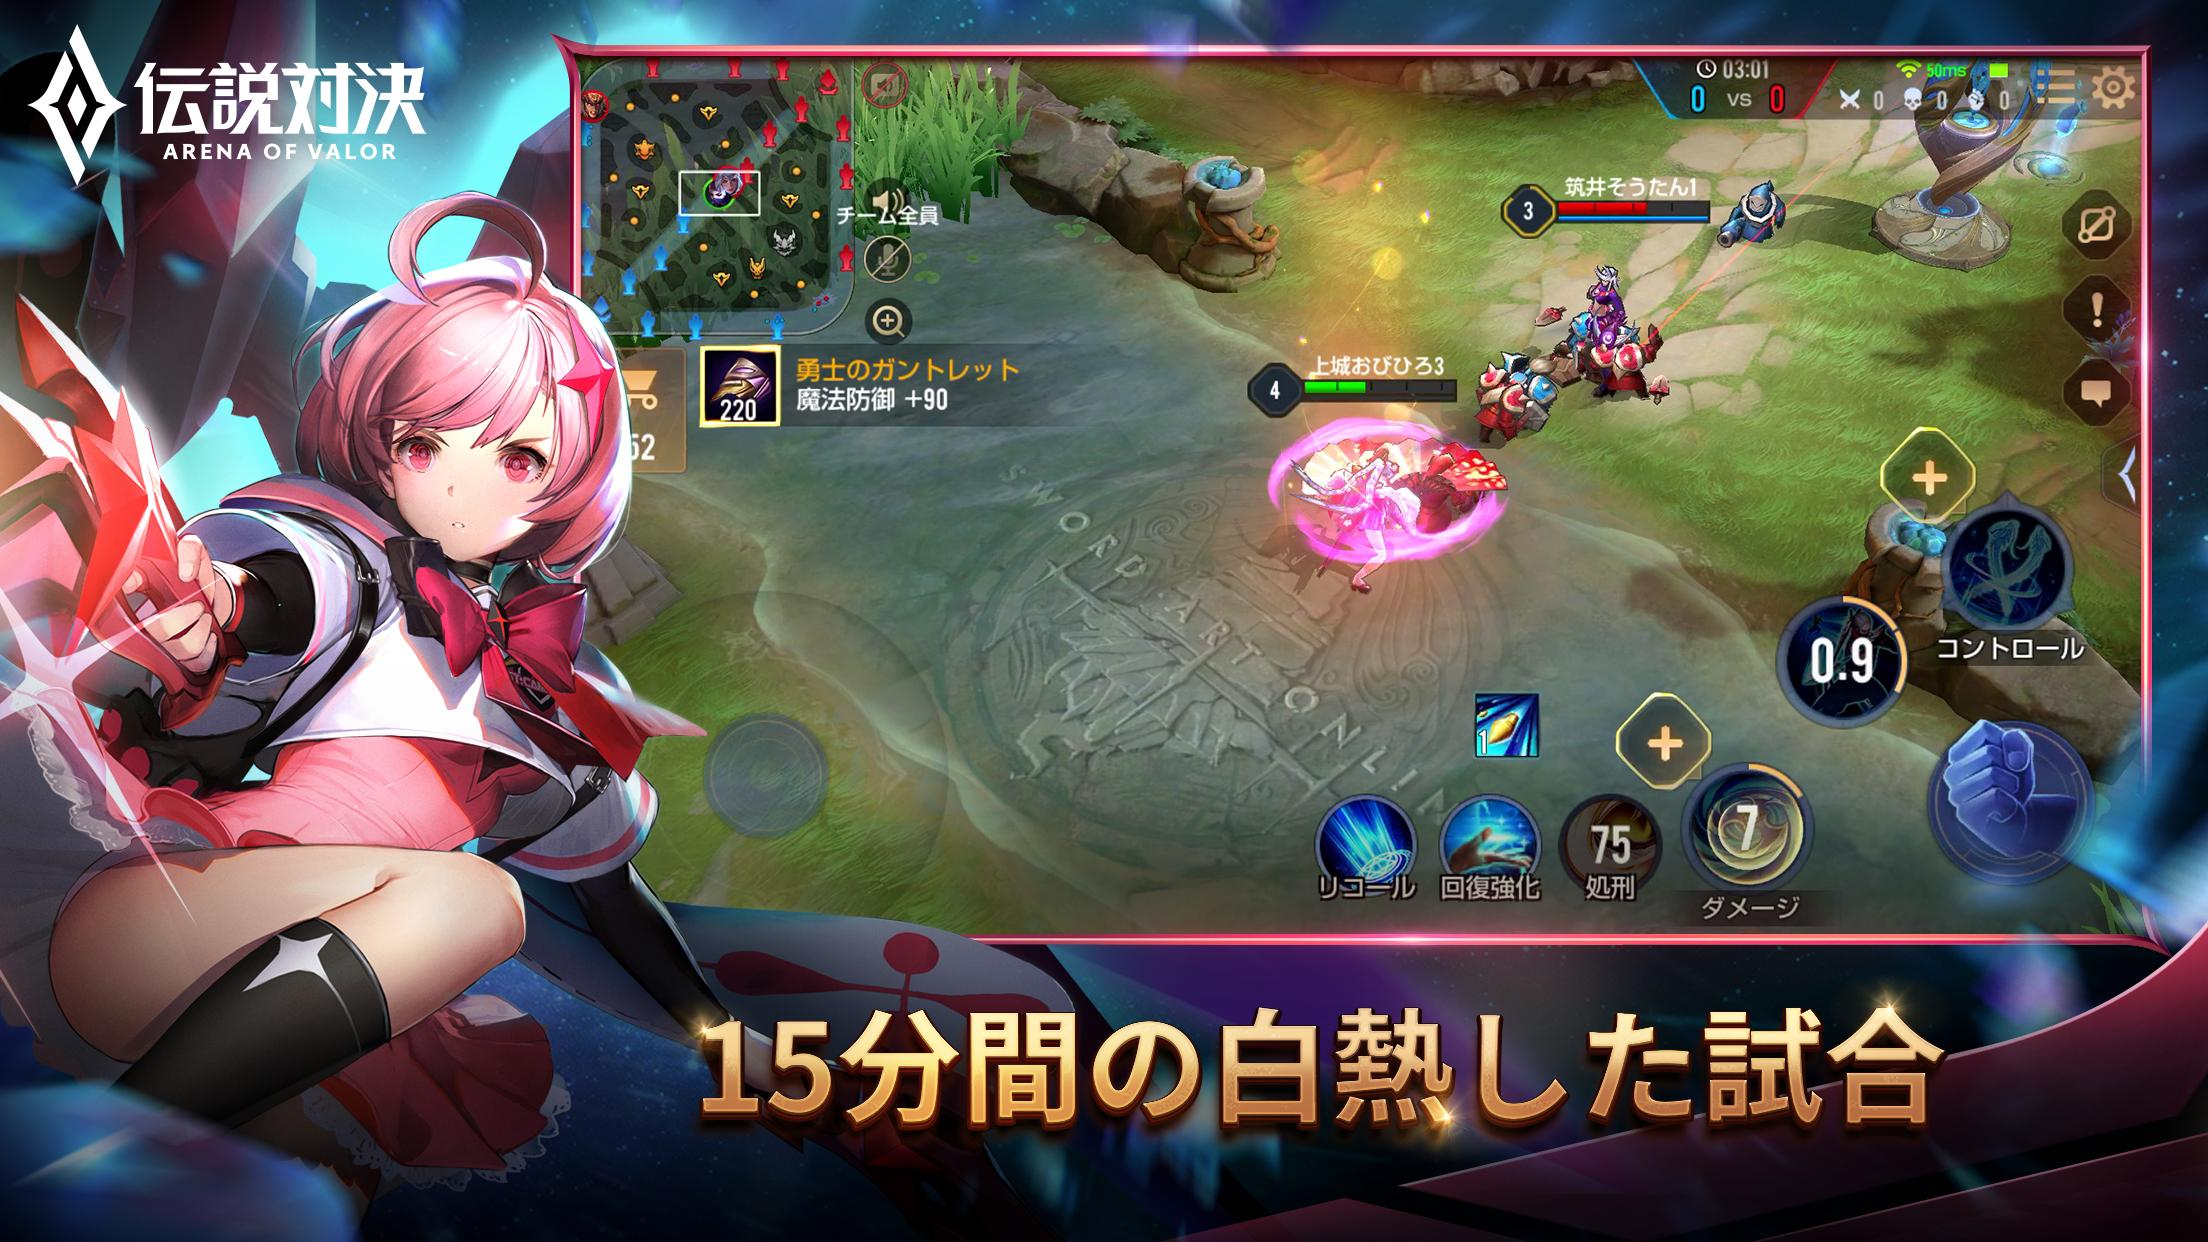 伝説対決 Arena of Valor 1.36.1.8 Screenshot 6